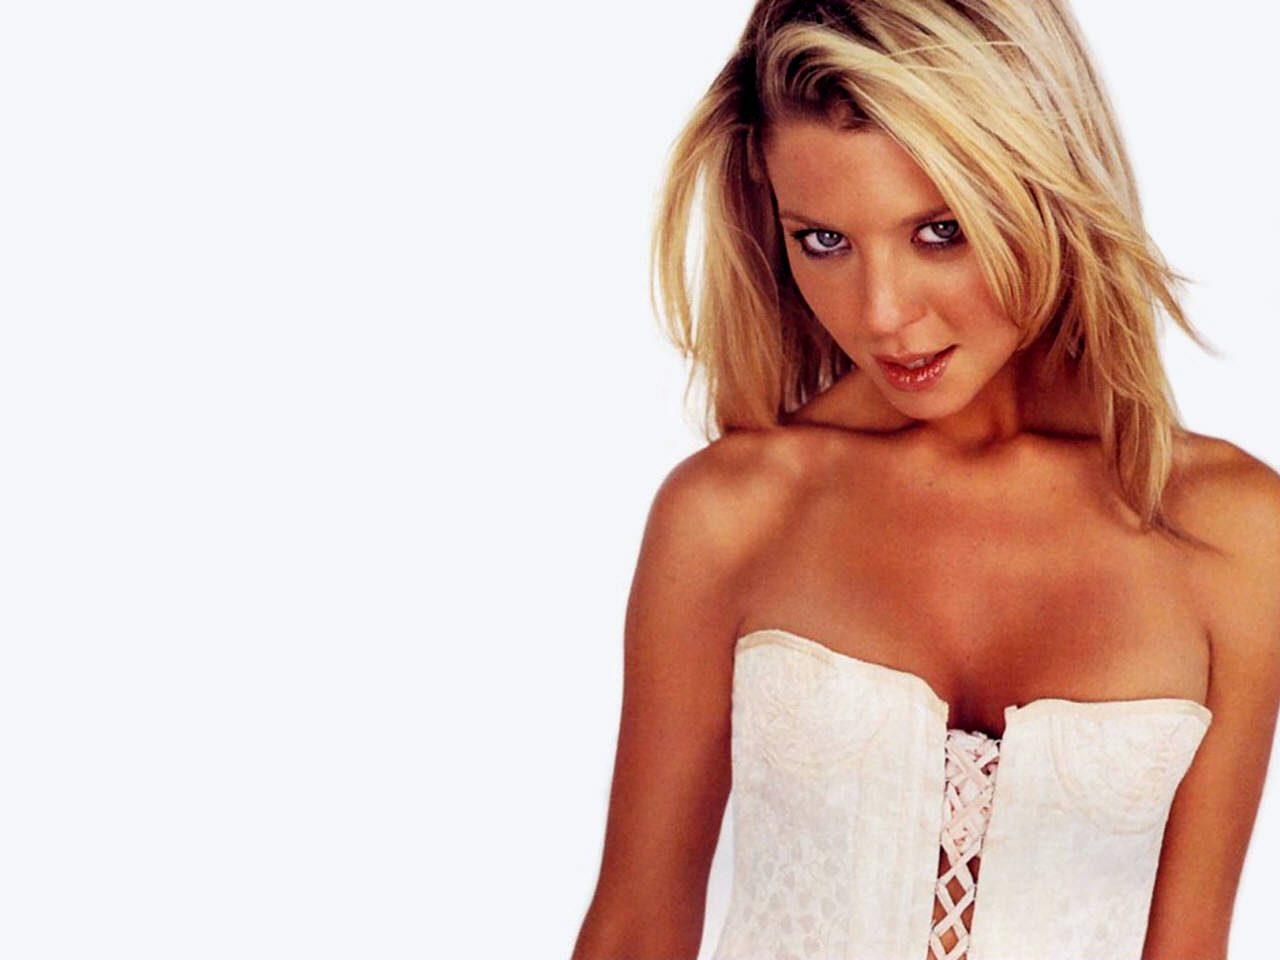 tara_reid_wallpaper_005